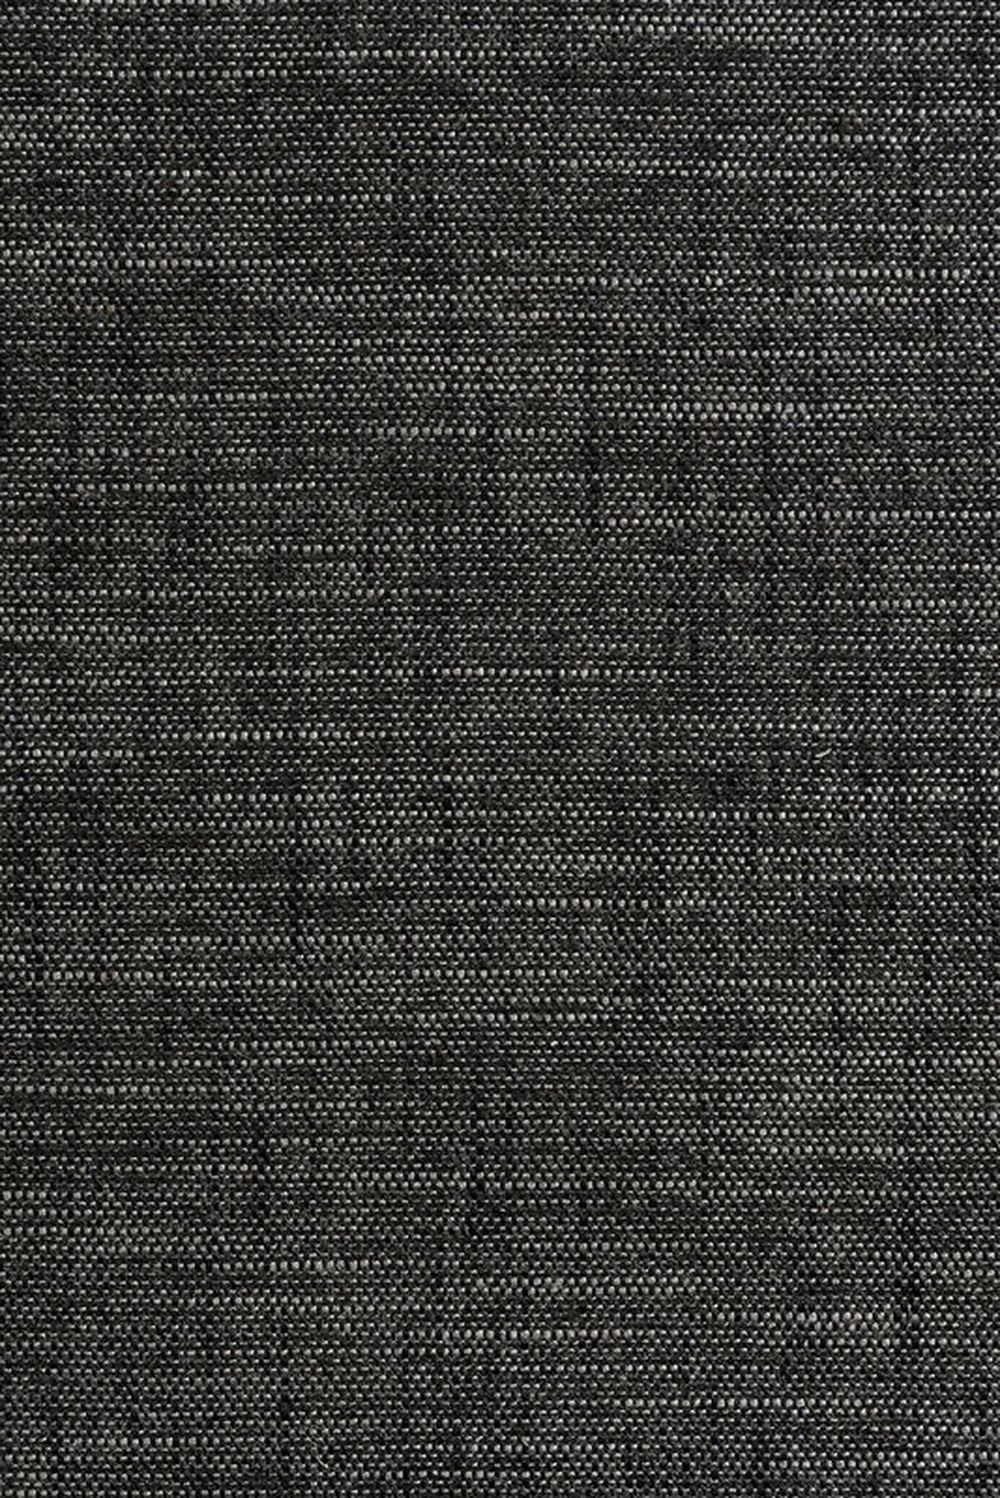 Photo of the fabric Sahel Ebony swatch by Mokum. Use for Upholstery Heavy Duty, Accessory. Style of Plain, Texture